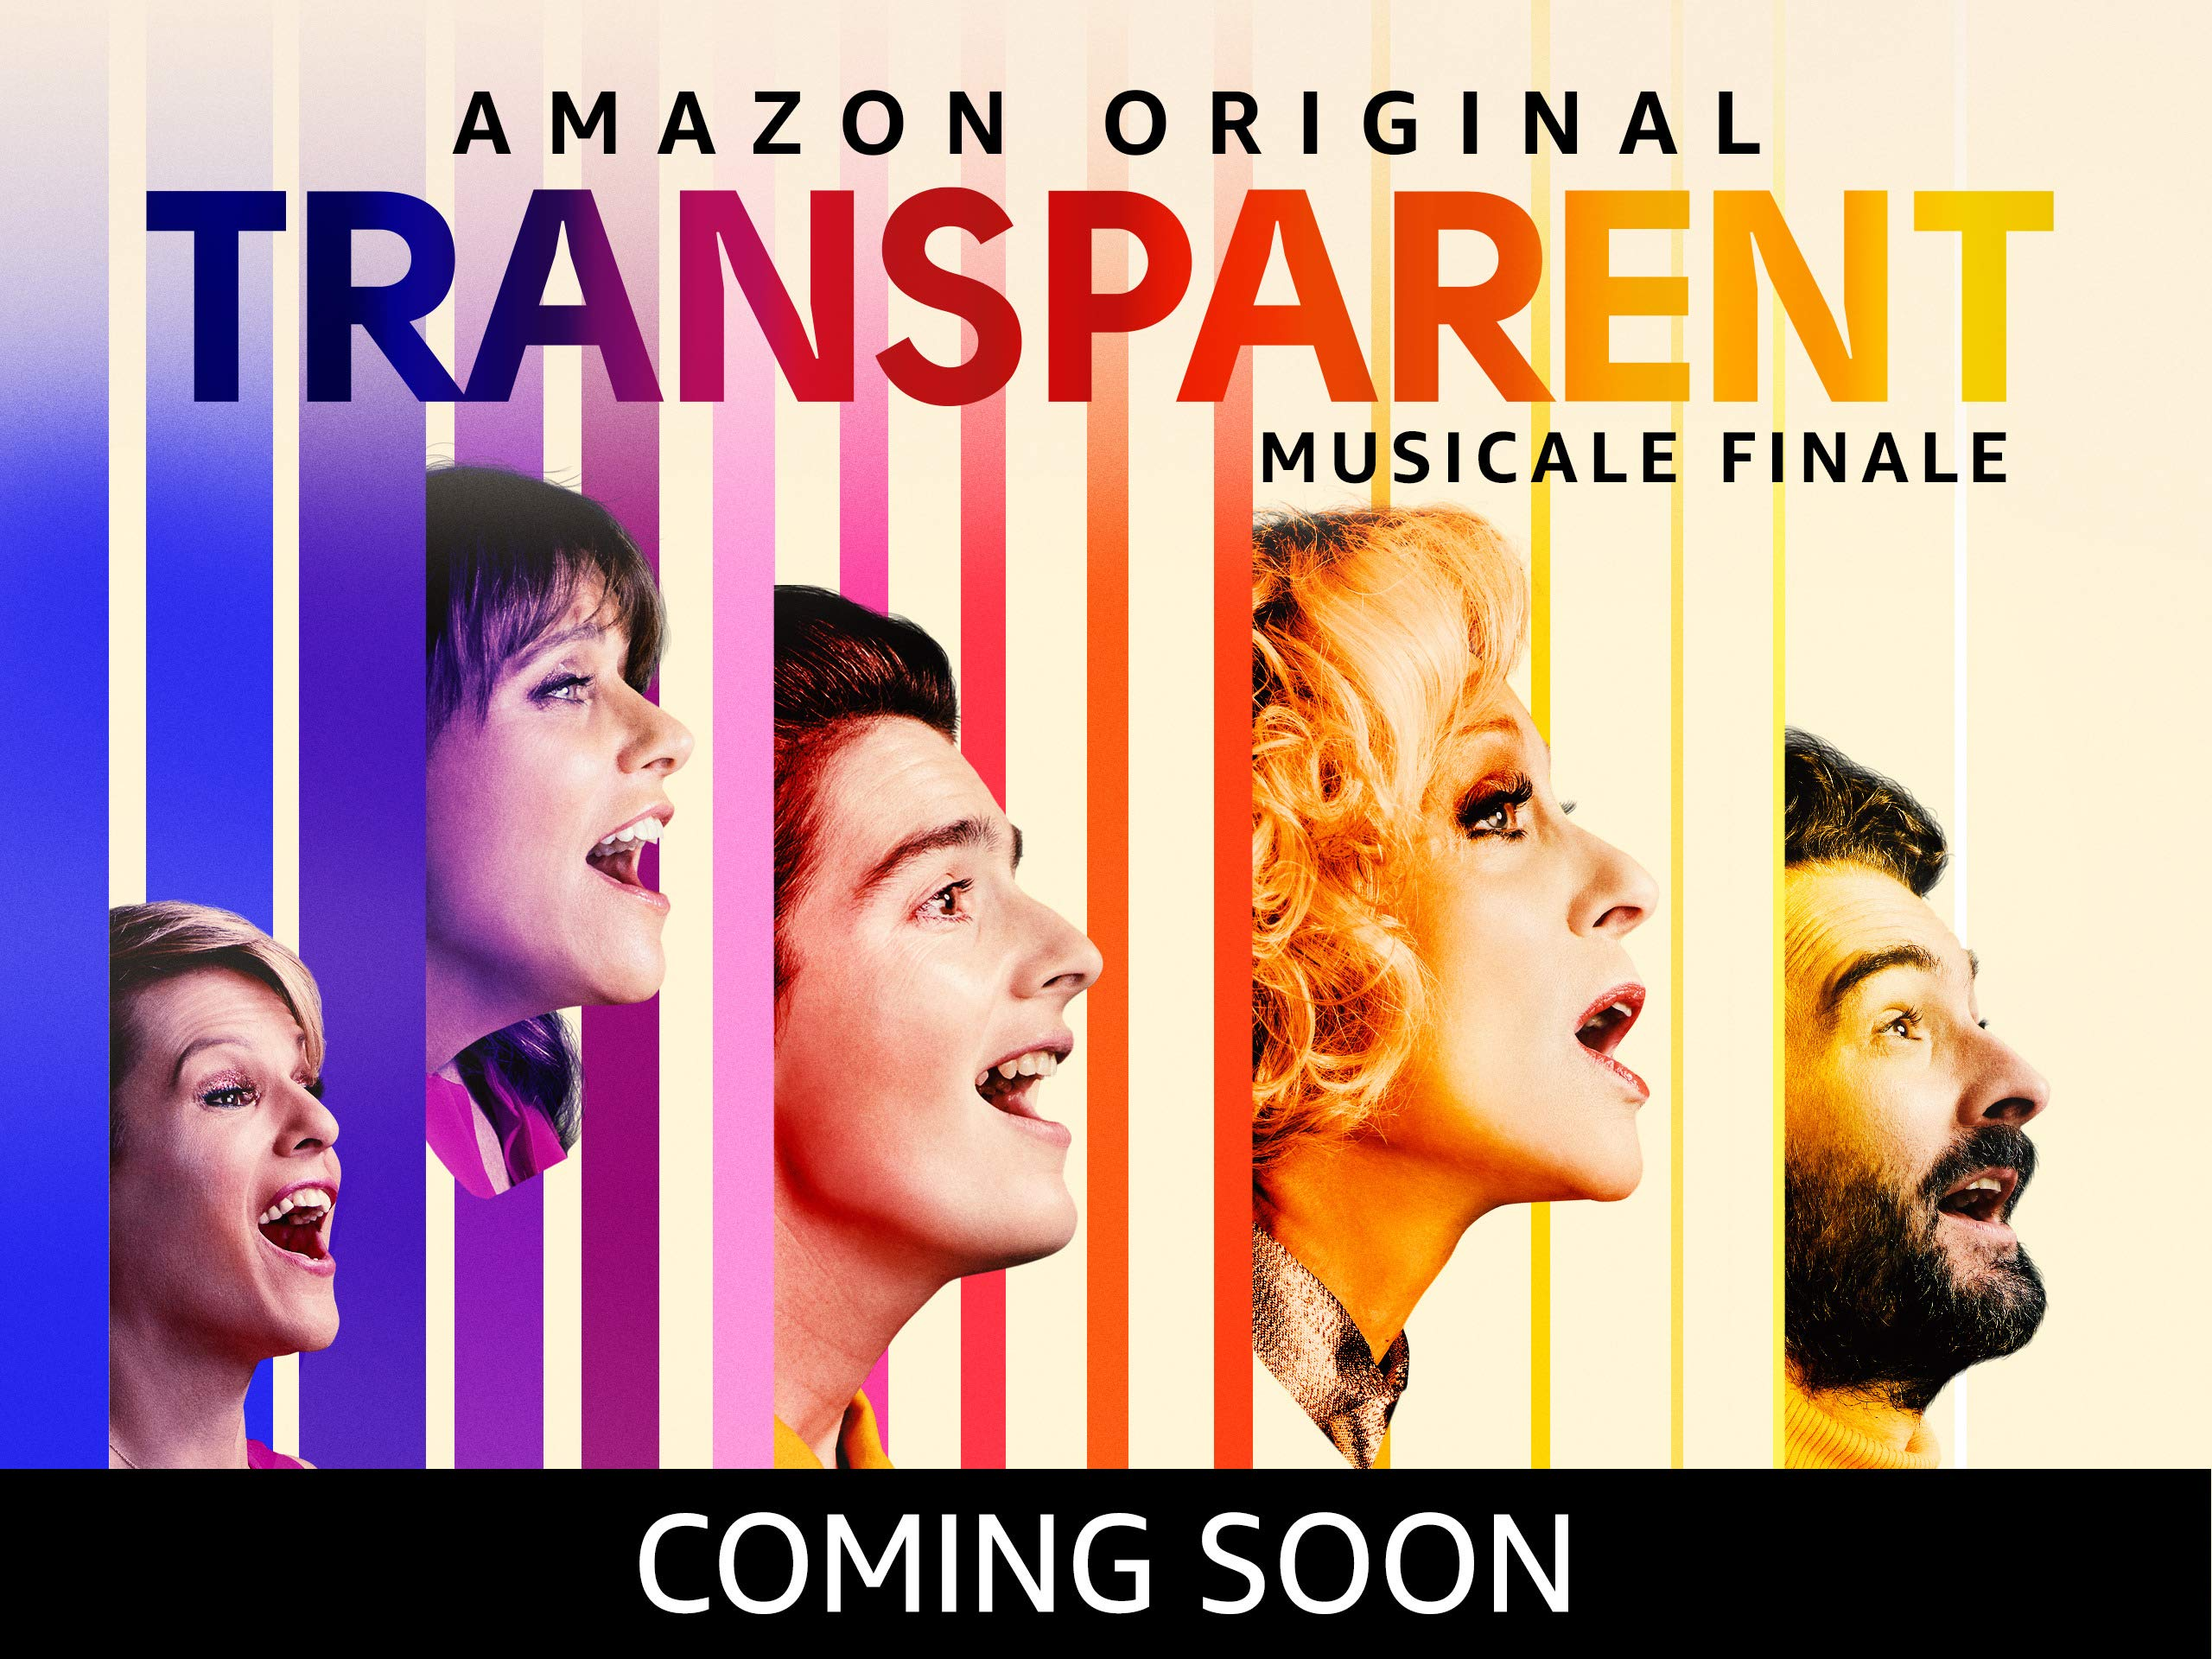 Transparent Musical Finale is coming soon to Prime